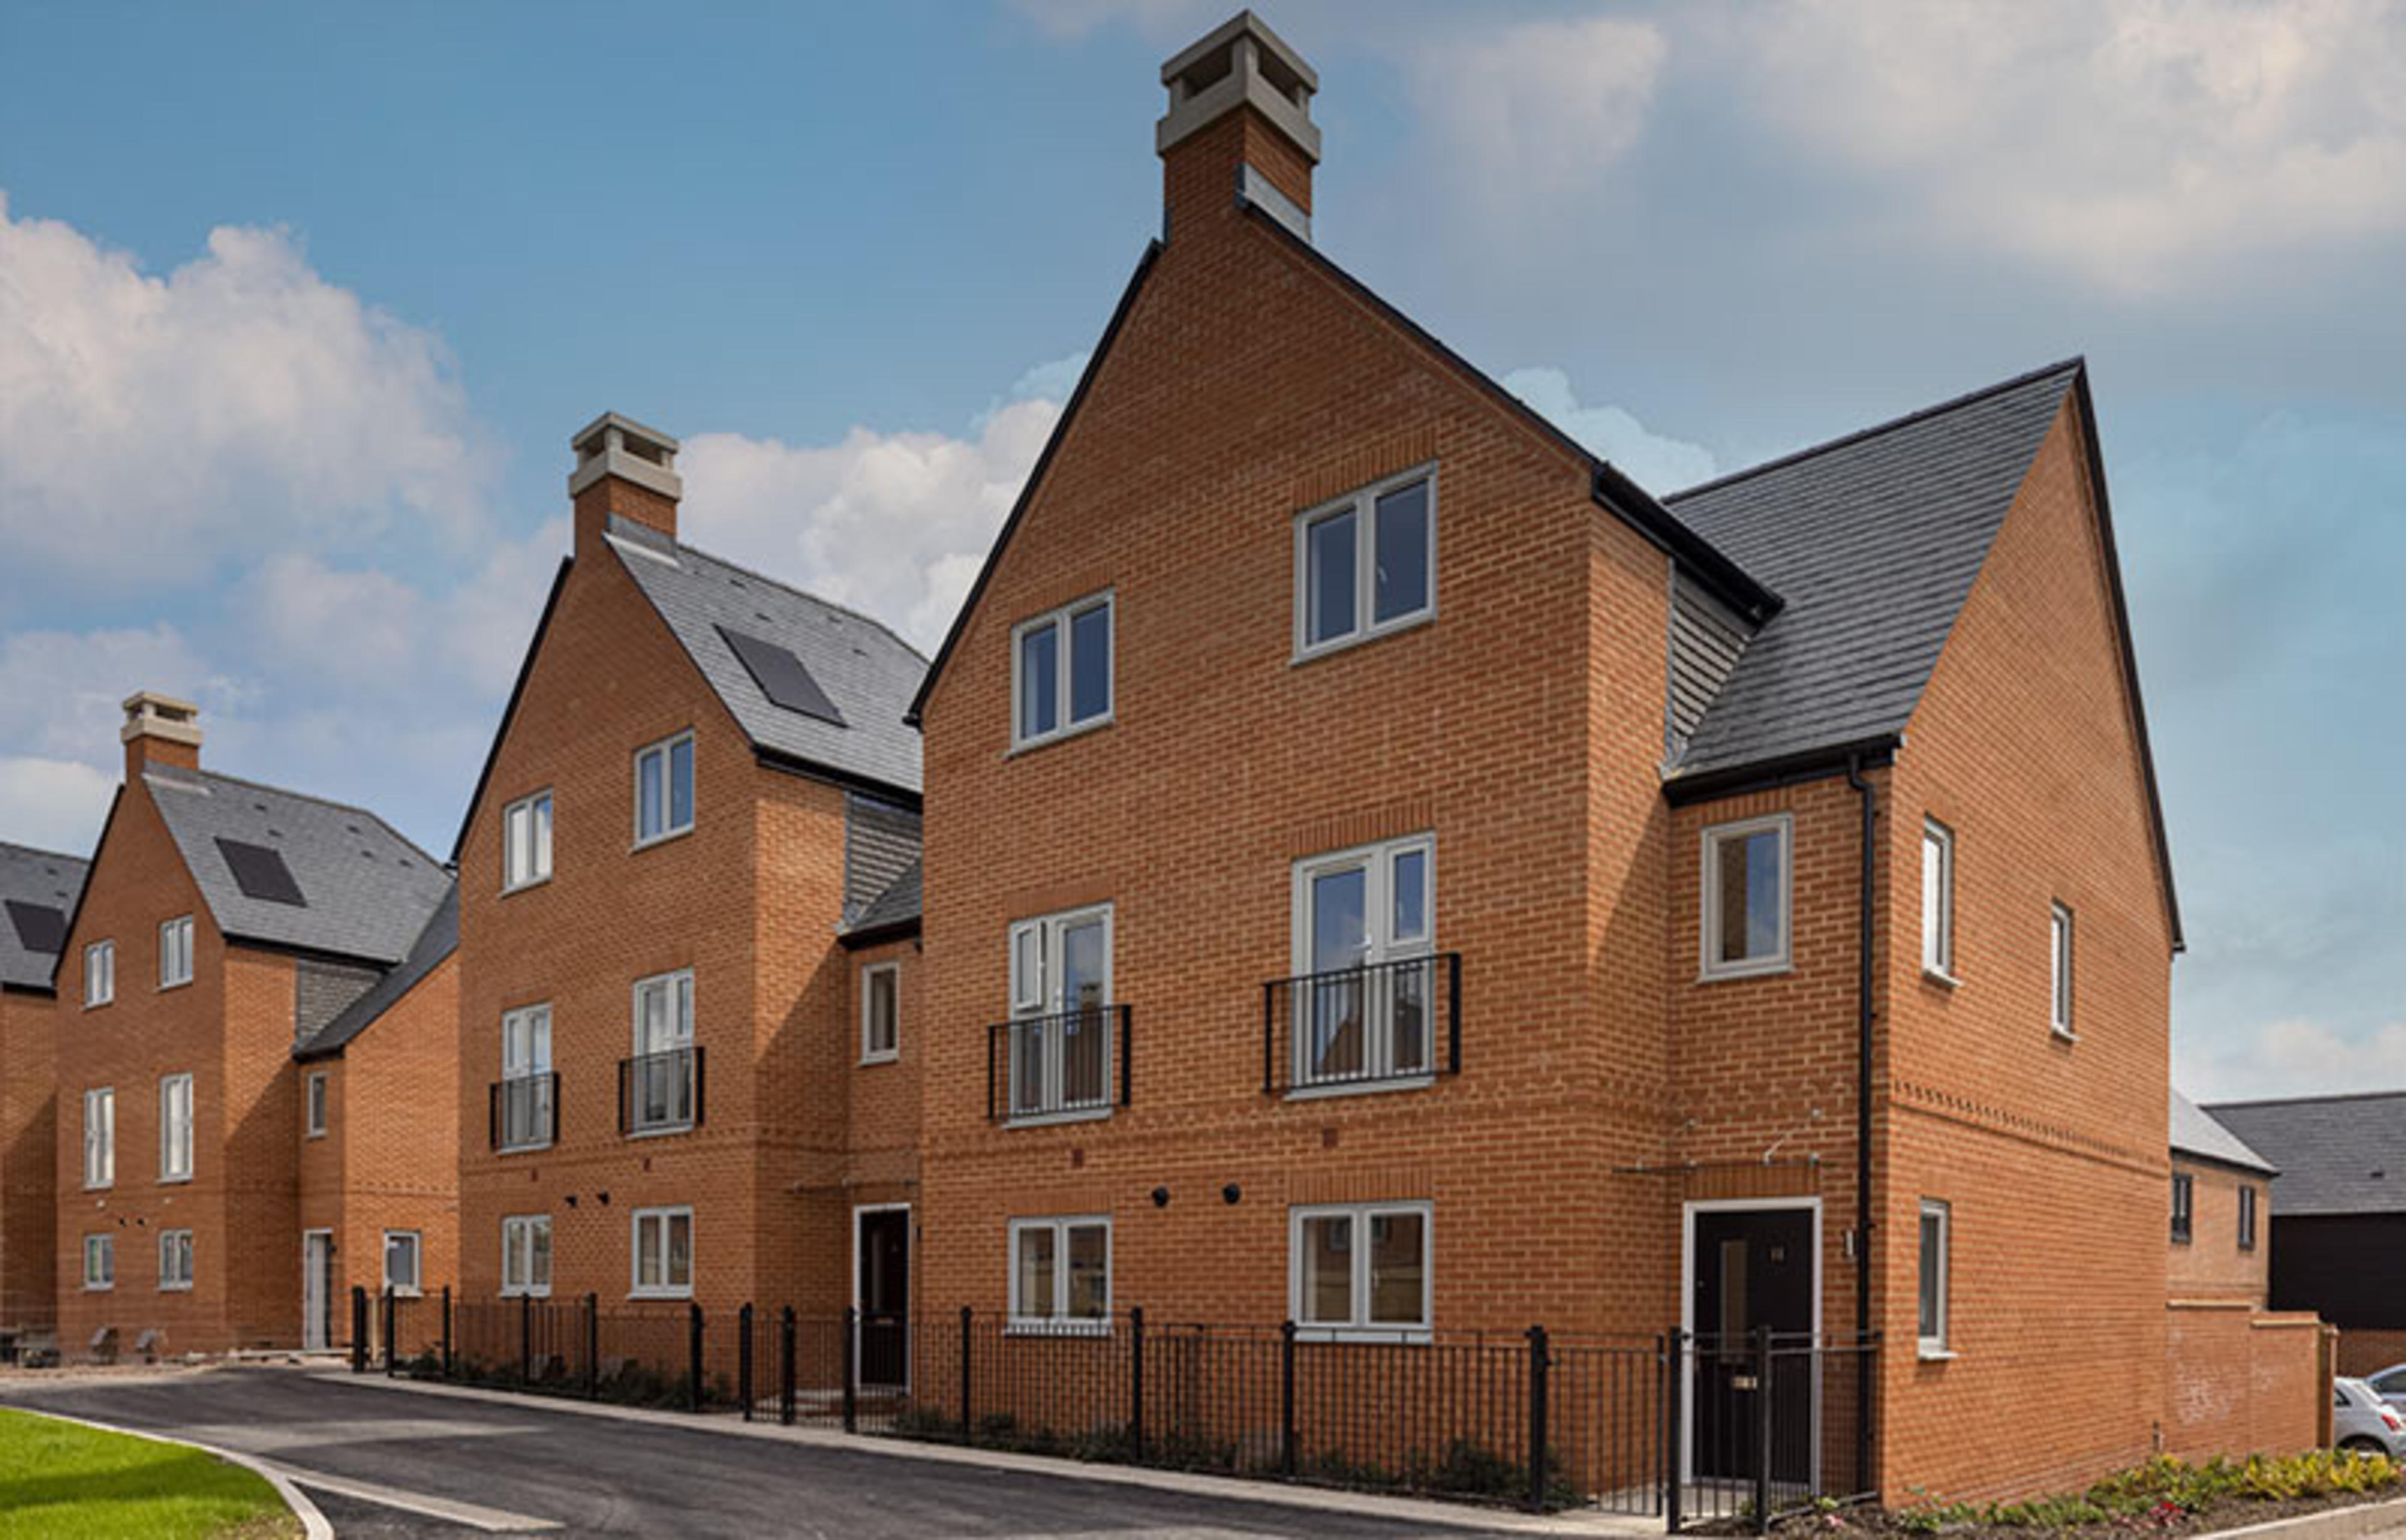 A row of three bedroom town houses at Kings Barton, Winchester